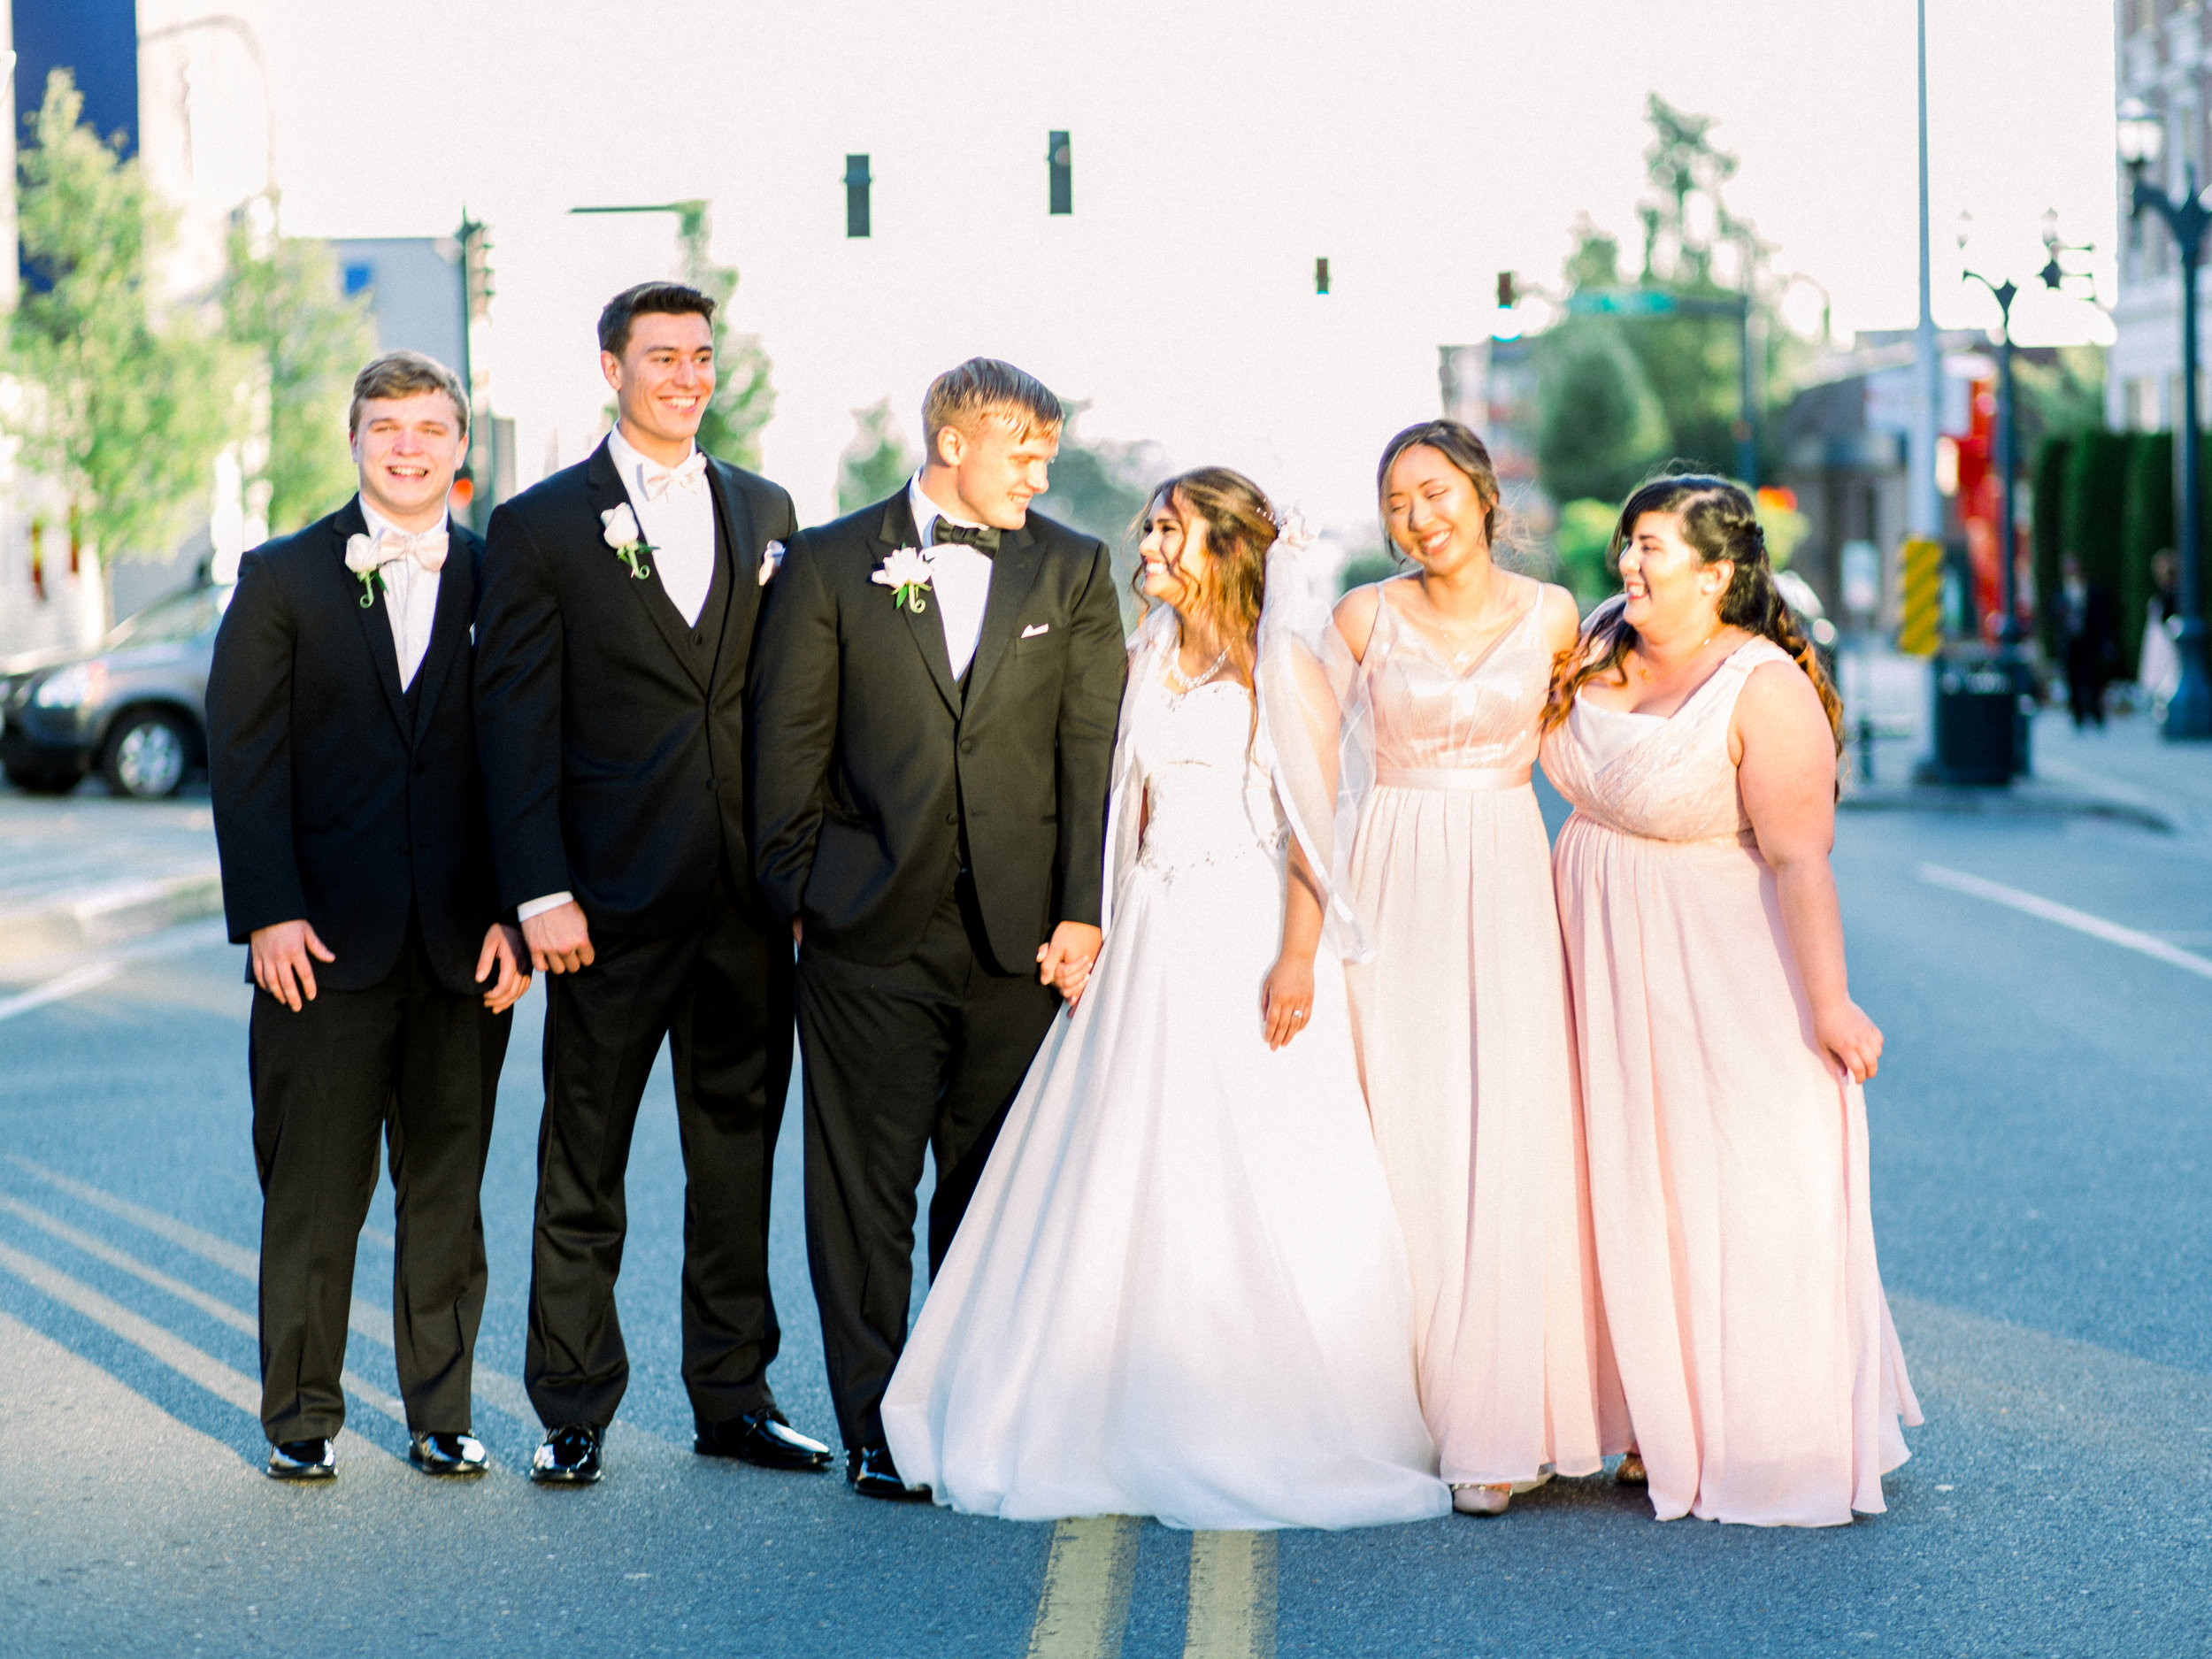 katie_graham_photography_wedding_photographer_bemus_point_lakewood_jamestown_new_york